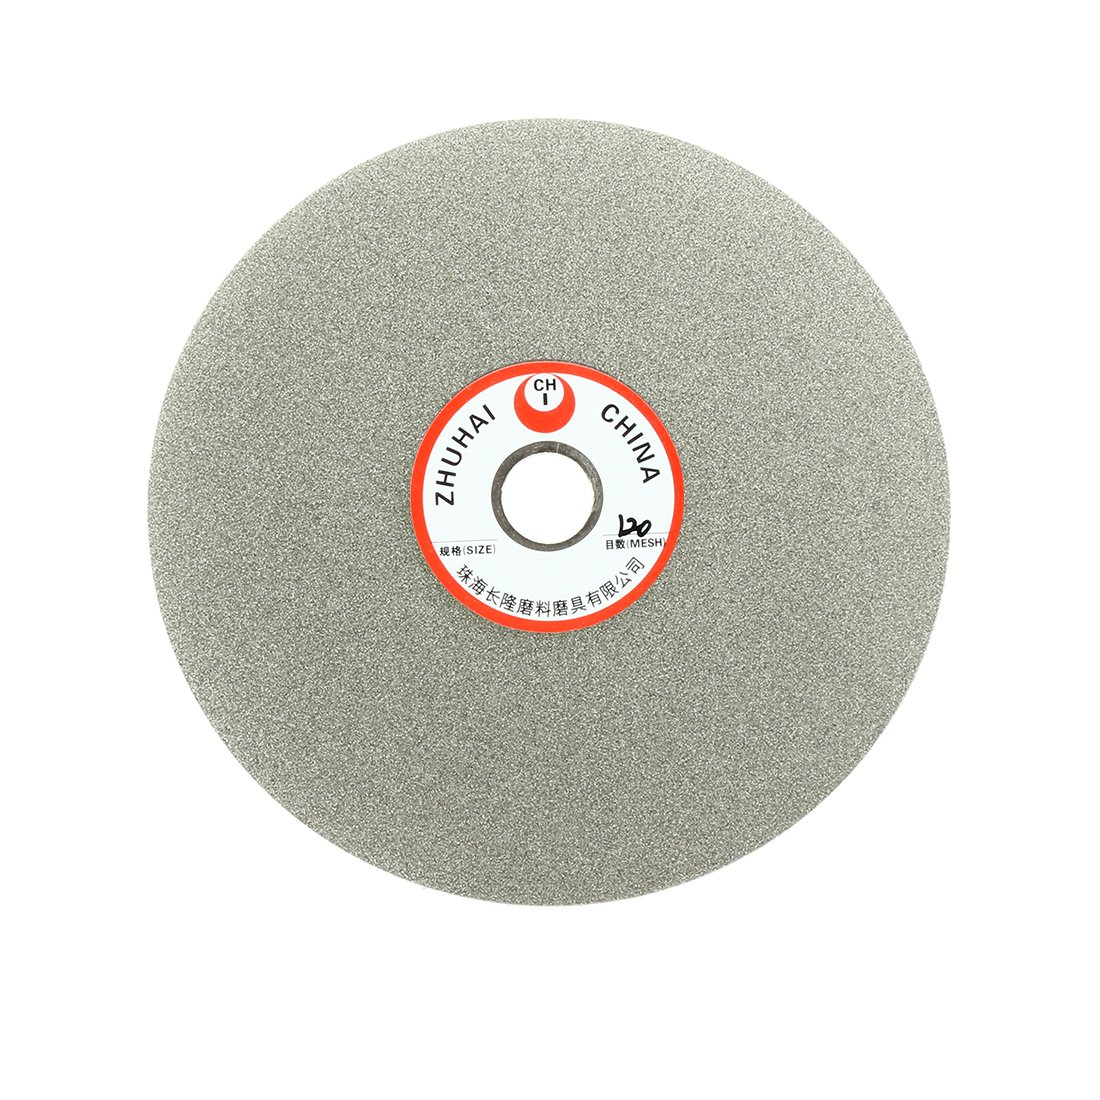 uxcell 6-inch Grit 120 Diamond Coated Flat Lap Wheel Grinding Disc Polishing Tool by uxcell